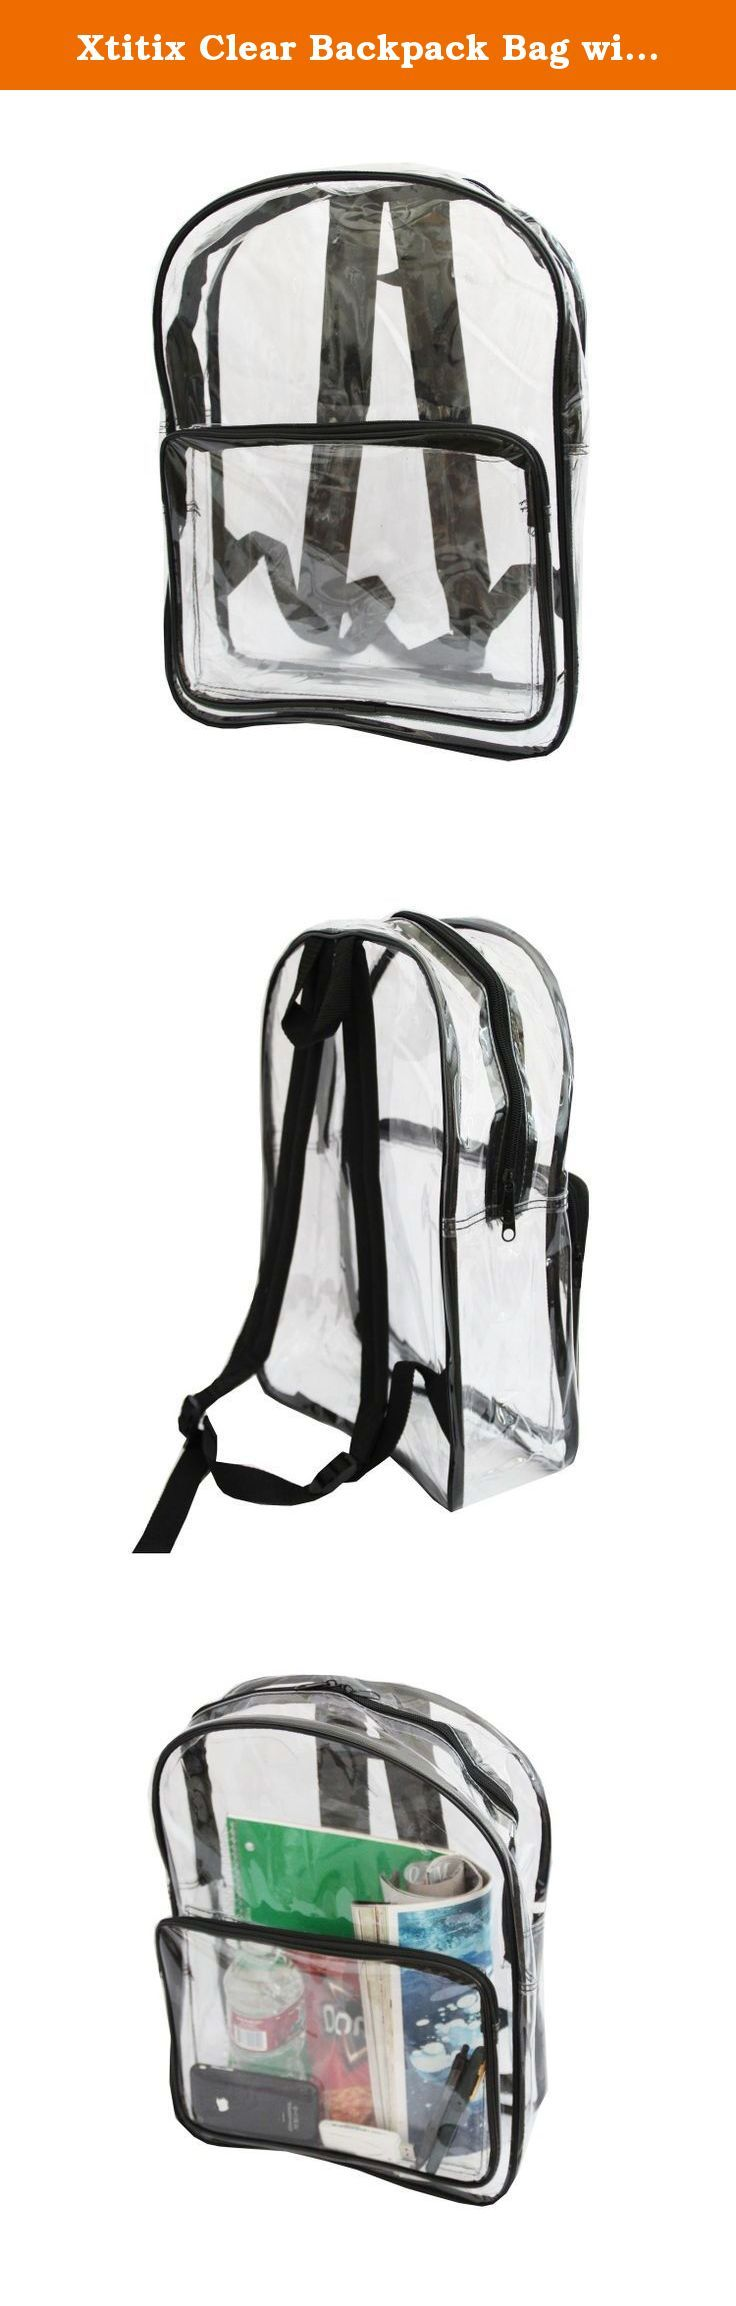 Xtitix Clear Backpack Bag with Black Handle. This backpack is great for adults at music events, correctional facilities, airport security and more. It is good for school, work, tarvel and other. The completely see through material allows for viewing of what is inside from the outside, to increase the security check and scan. Suitable for workplaces or employers that require clear bags. Lightweight at 1lb. Comes with dual straps to disperse weight and great for hiking and trips to the…